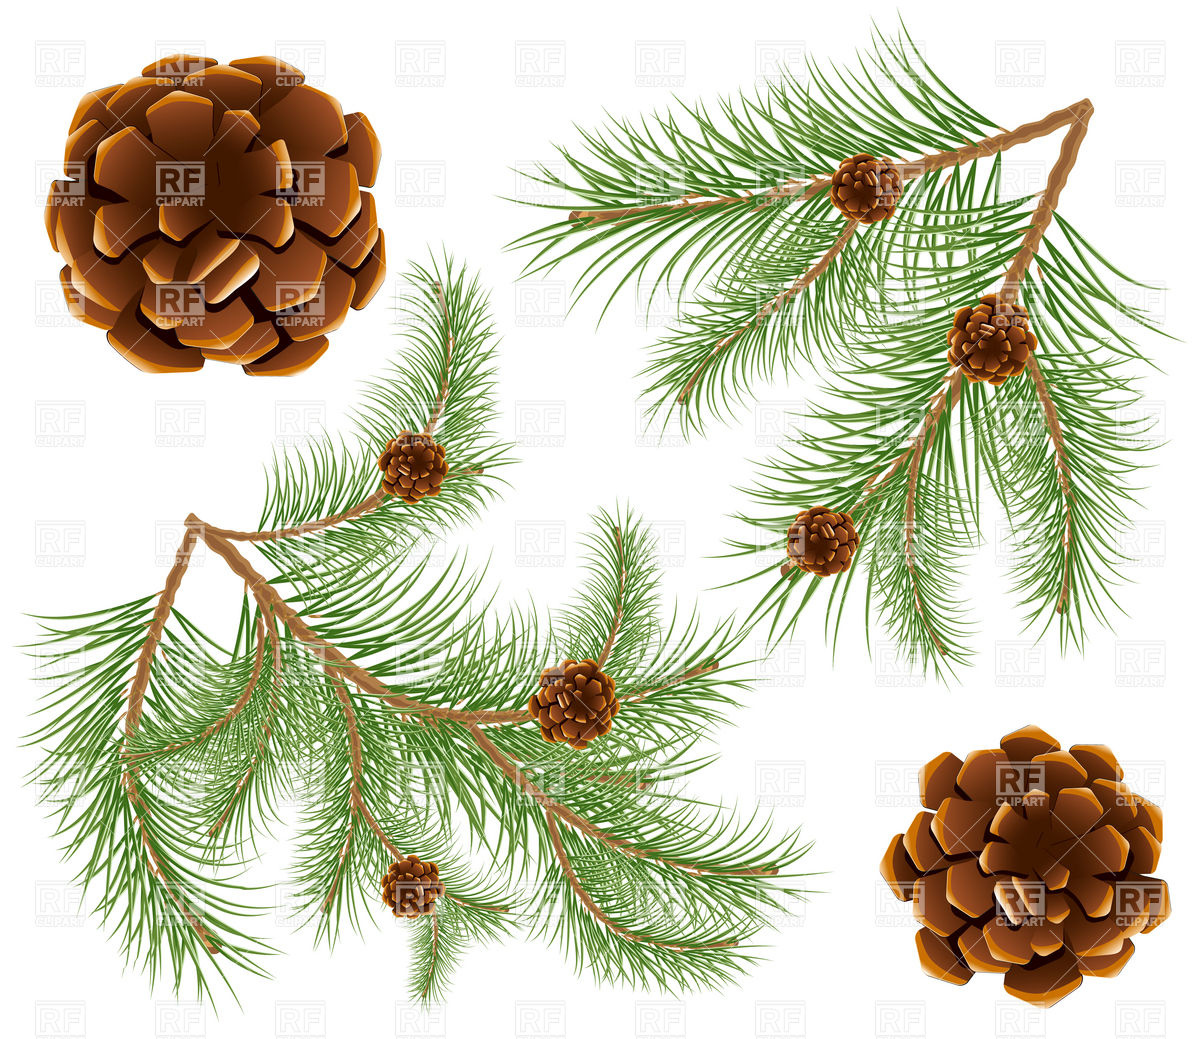 Pine cones with pine needles twig Vector Image #5183.